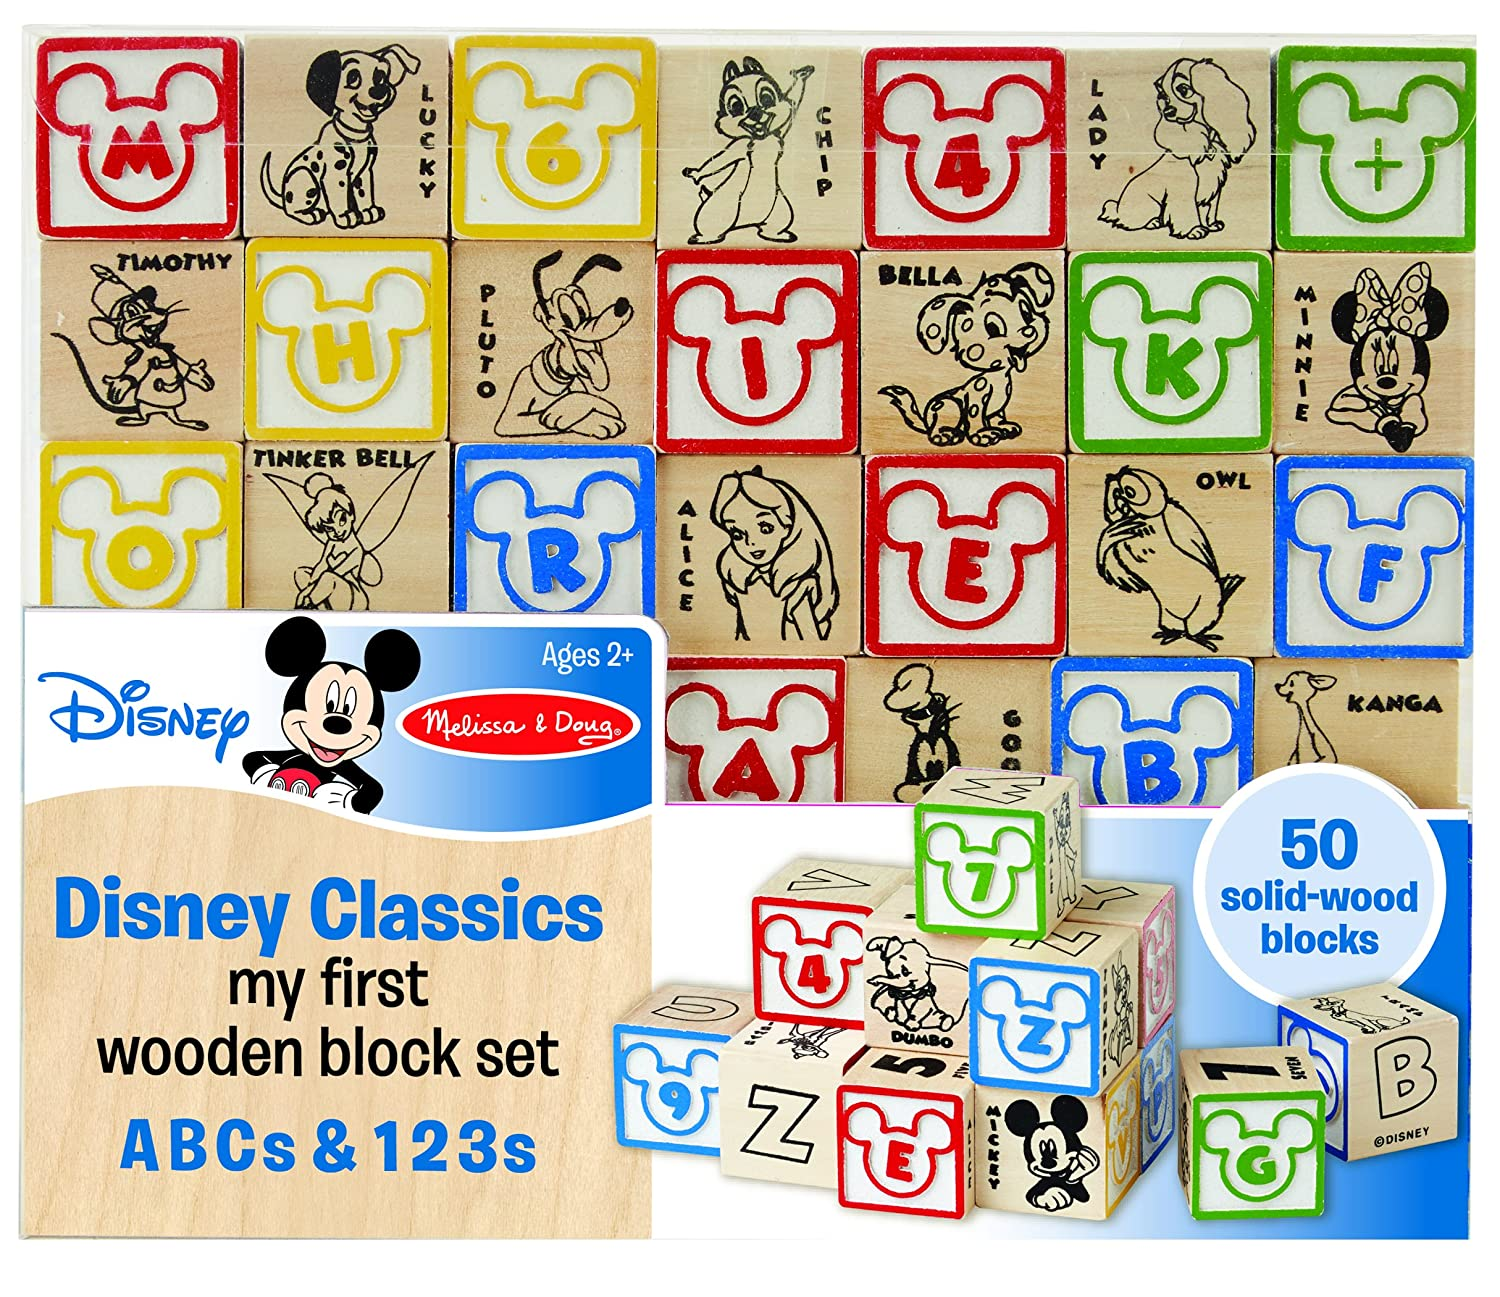 Melissa & Doug Disney Baby Classics My First Wooden Block Set - ABCs and 123s With 50 Solid-Wood Blocks 5756